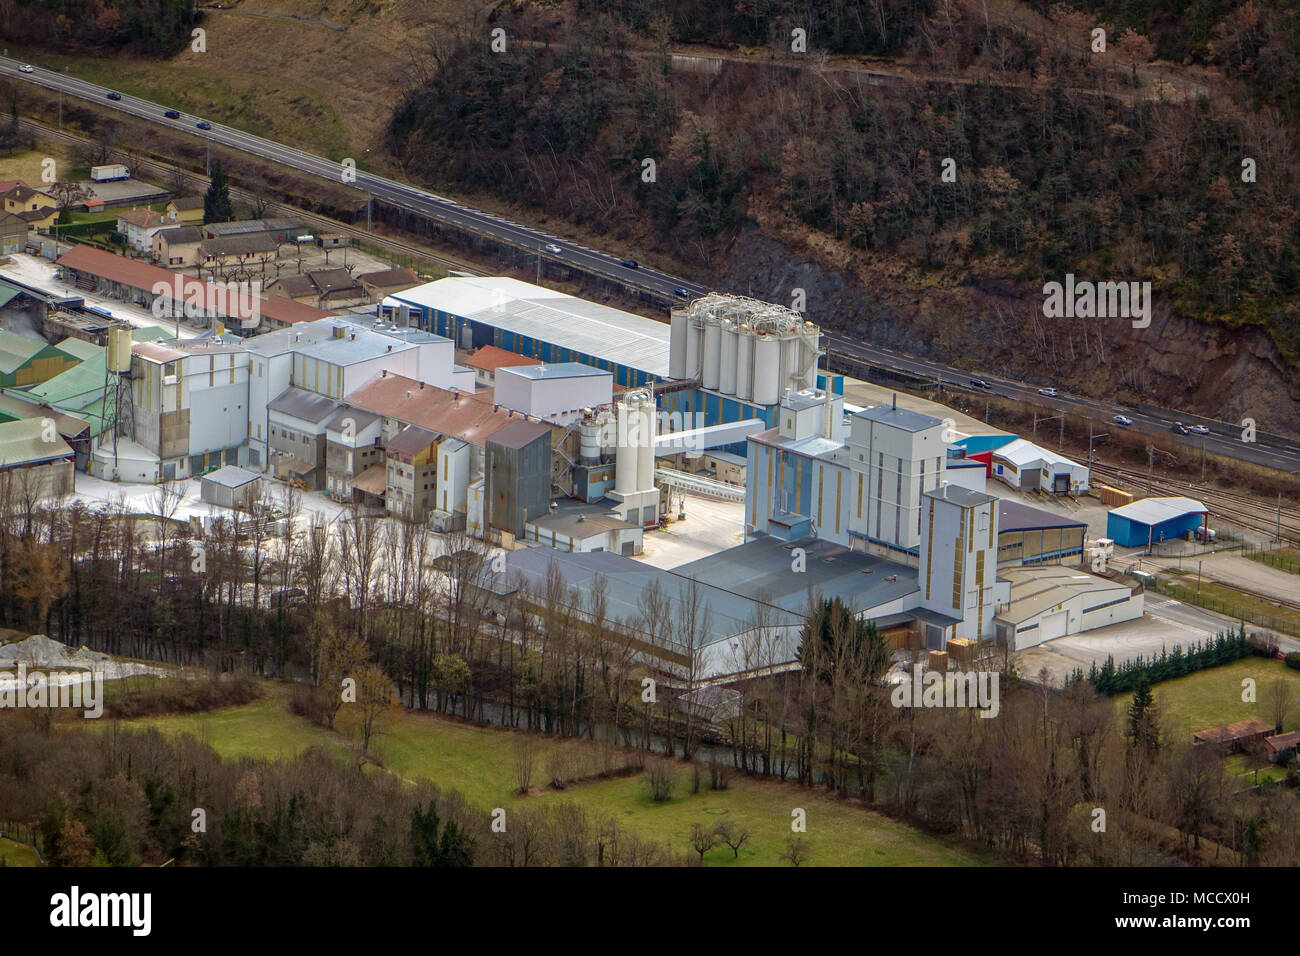 Imerys talc factory, Luzenac, Ariege, France, French Pyrenees - Stock Image